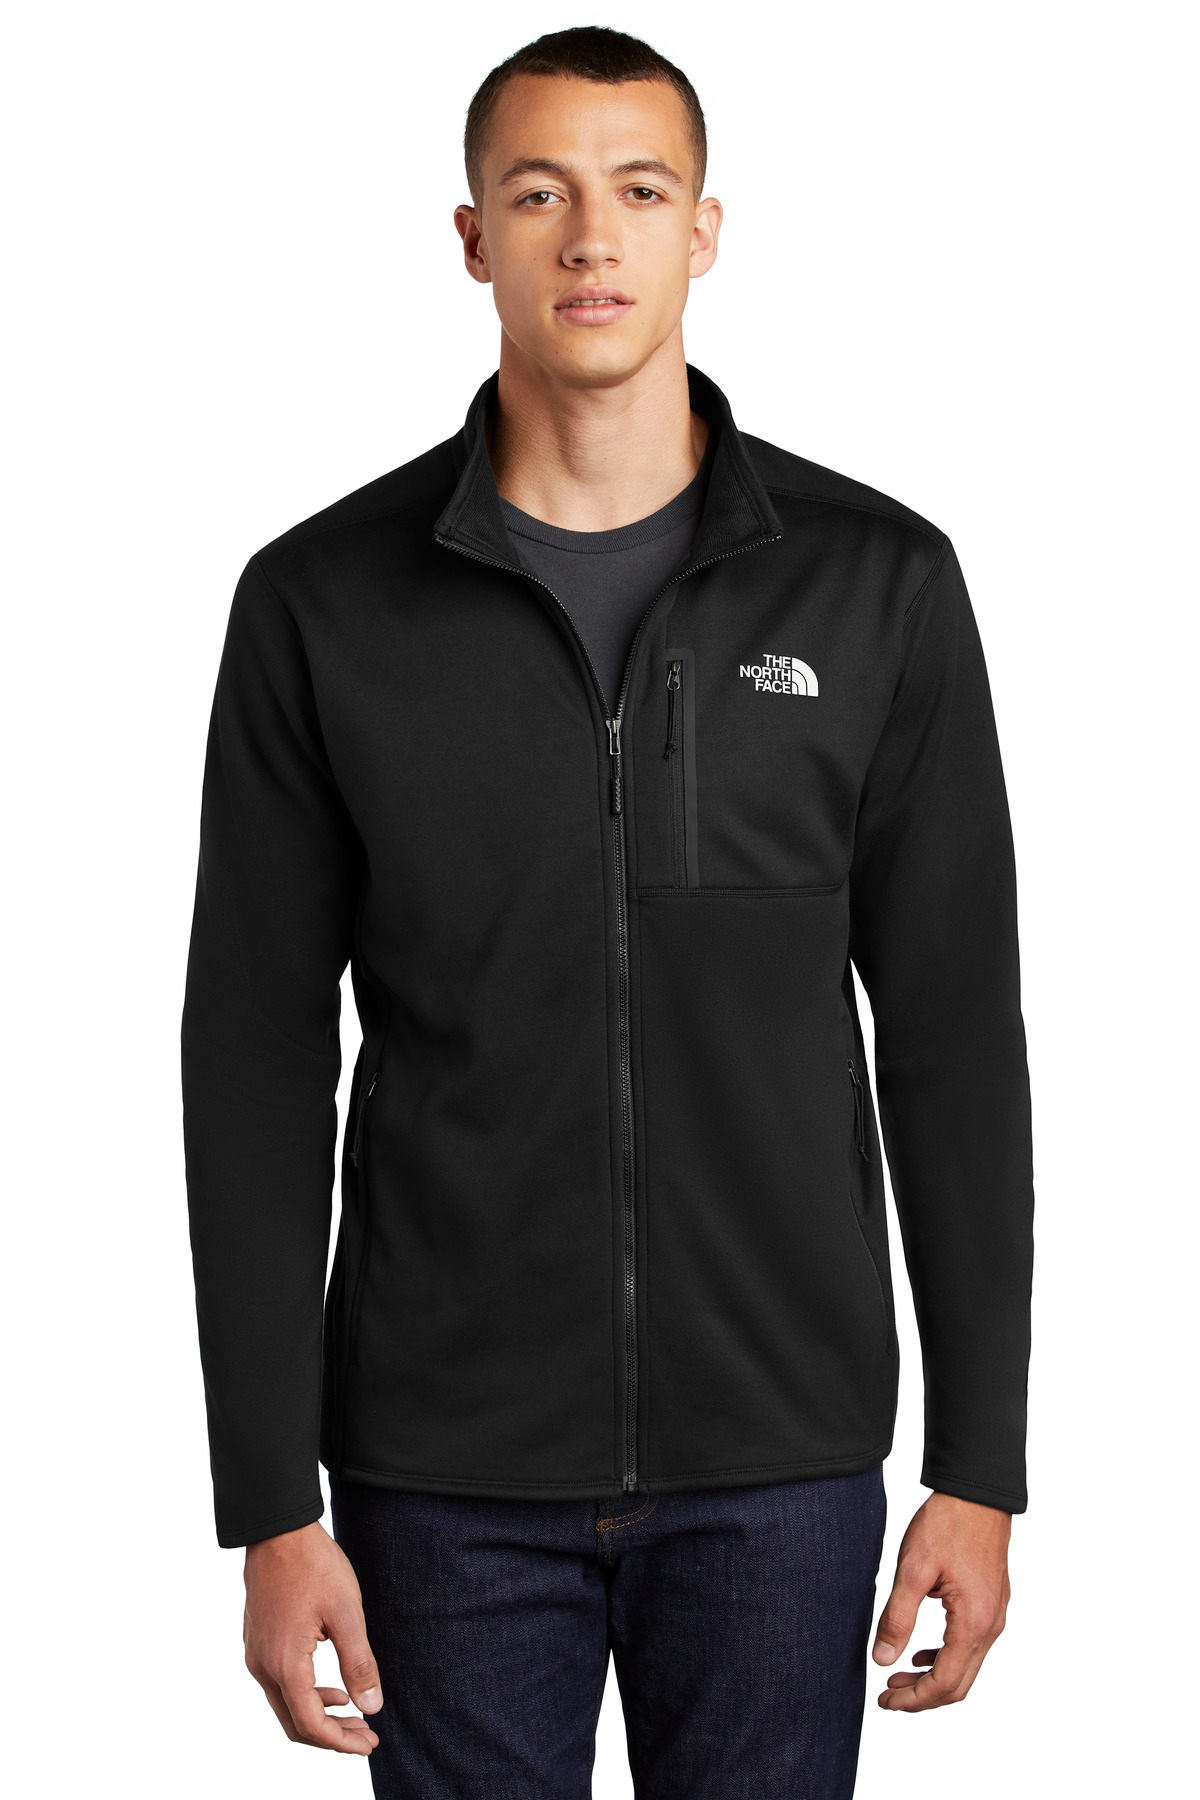 The North Face  ®  Skyline Full-Zip Fleece Jacket NF0A47F5 - TNF Black